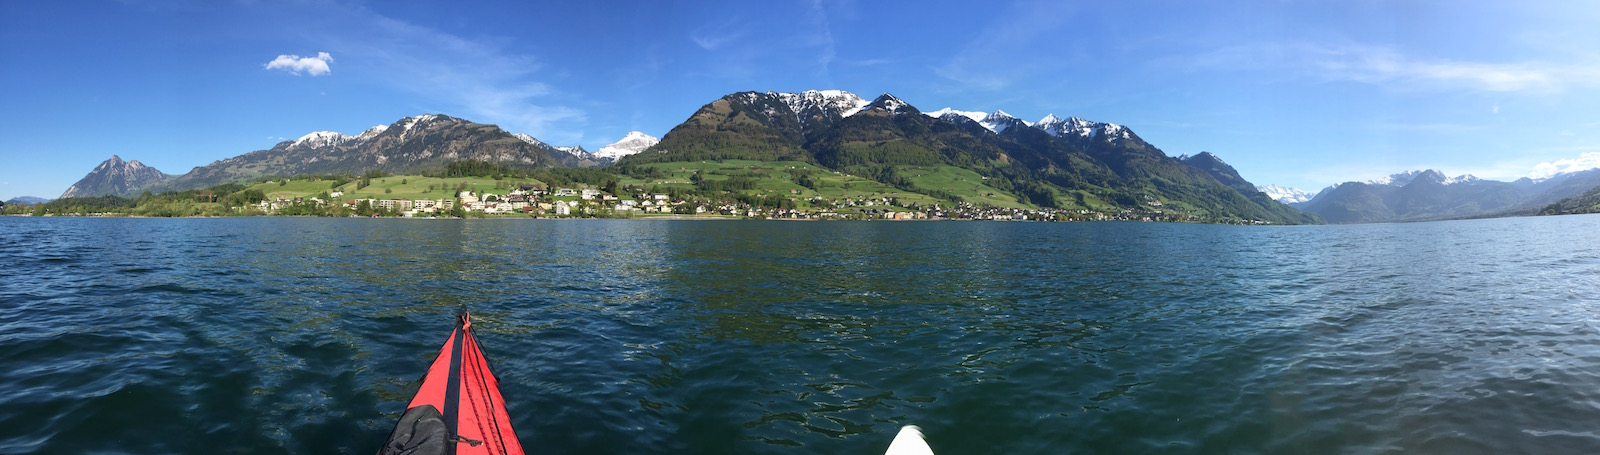 Switzerland in a Boat